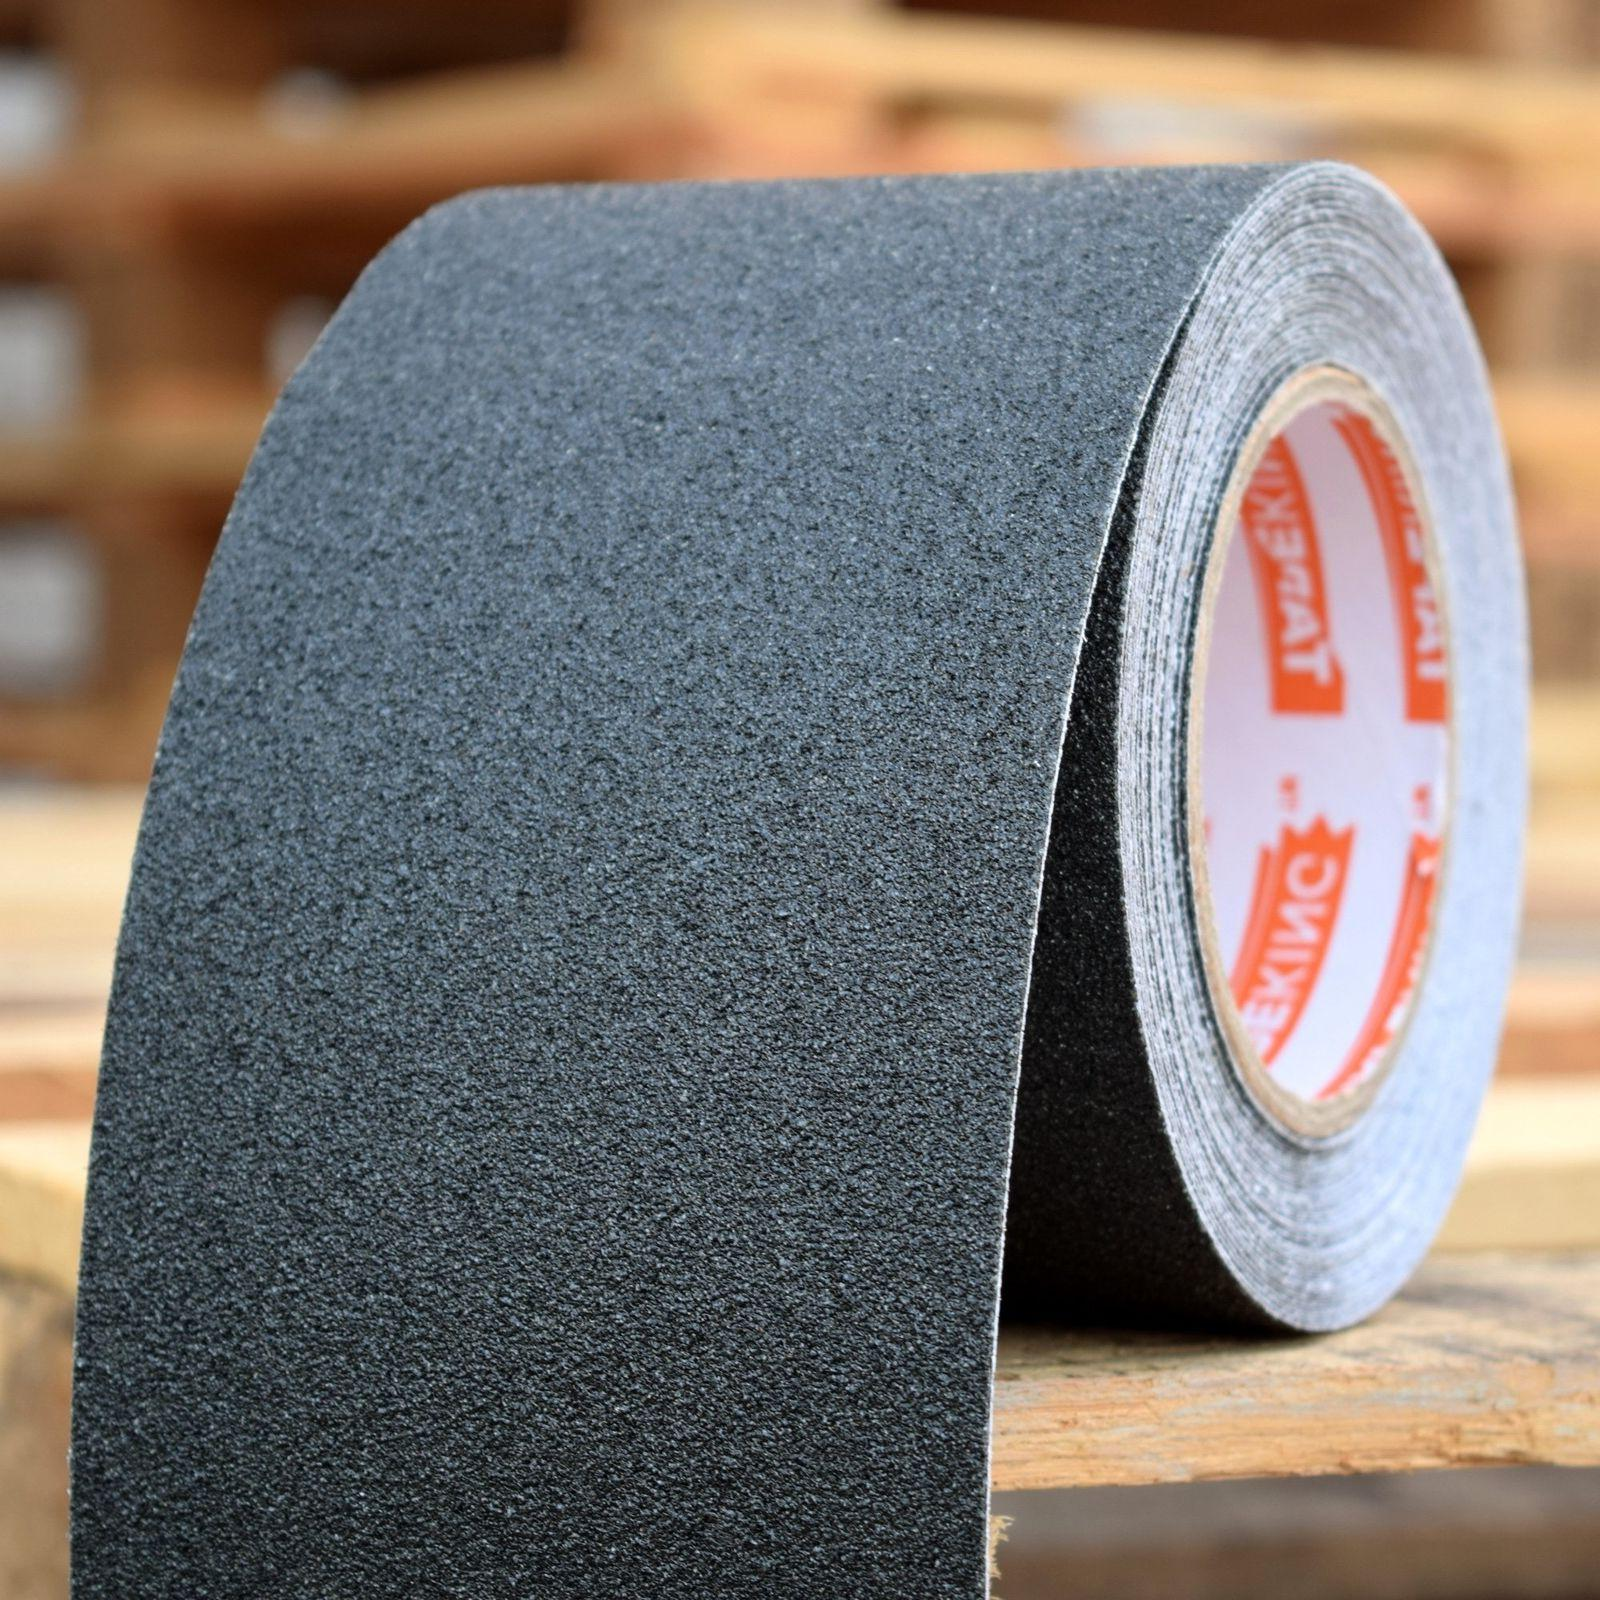 Tape Traction Tape - Inch x 30 Foot - Best Grip,